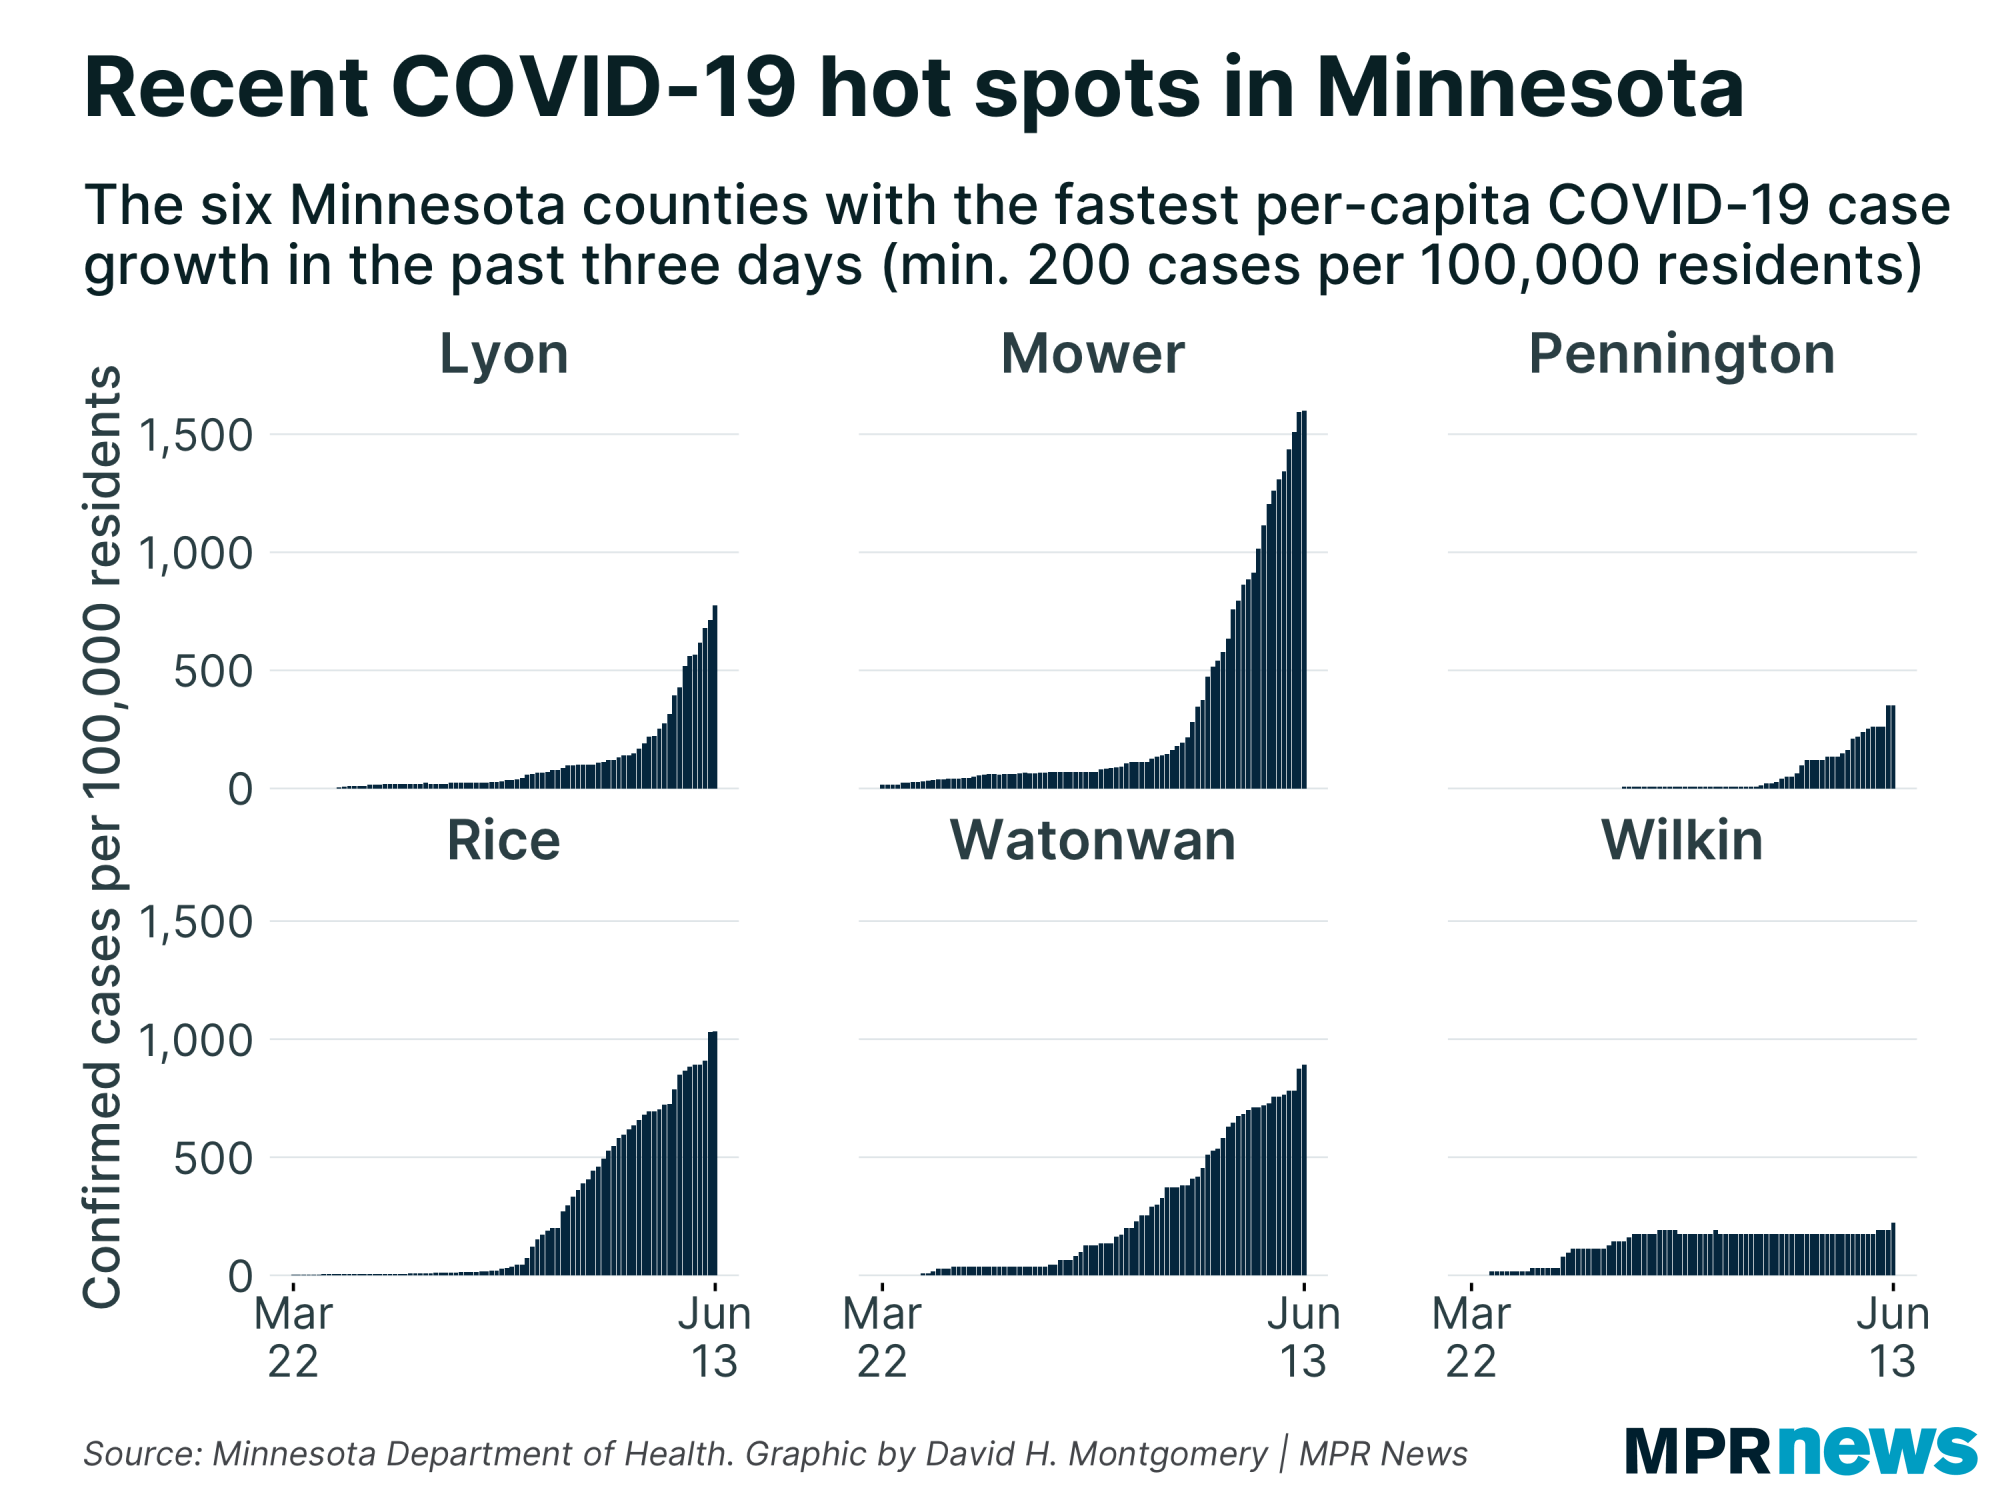 MN counties with the fastest per-capita growth in COVID-19 cases